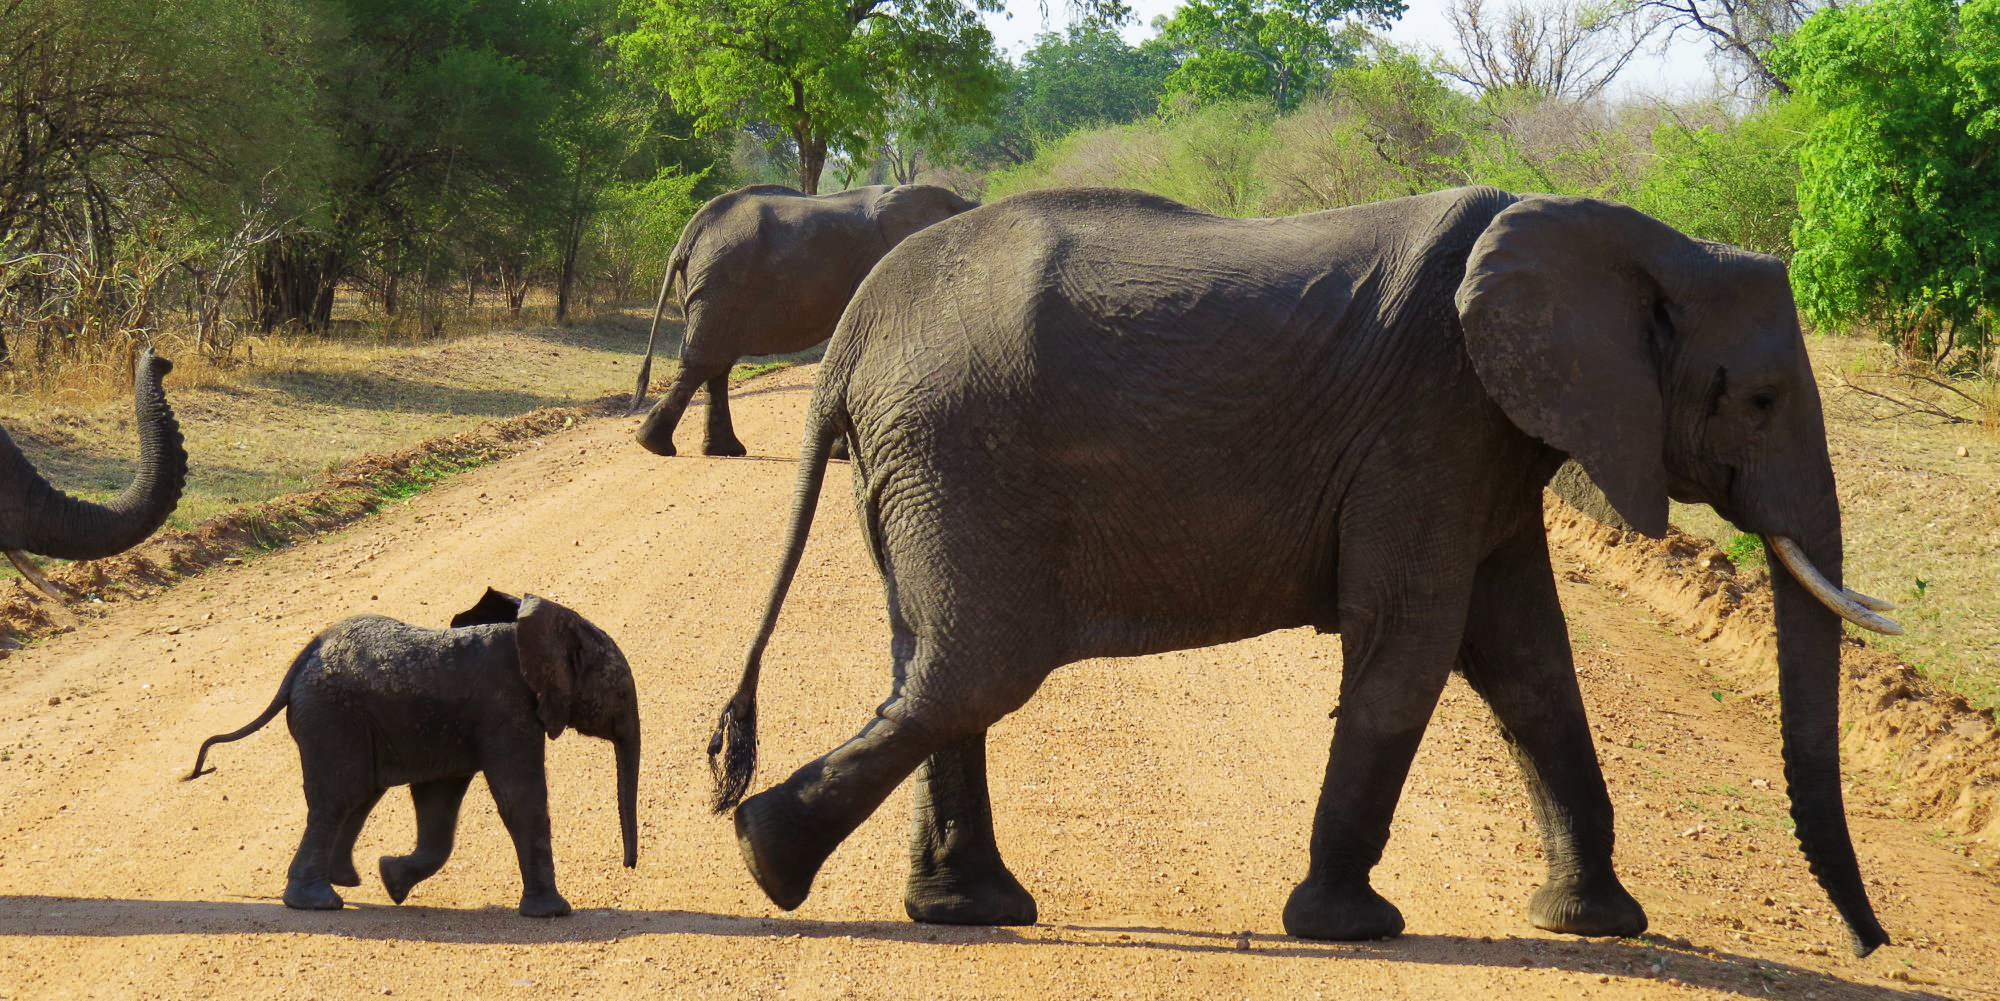 95 Elephants a day are dying at the hands of poachers. We can help make a difference together.